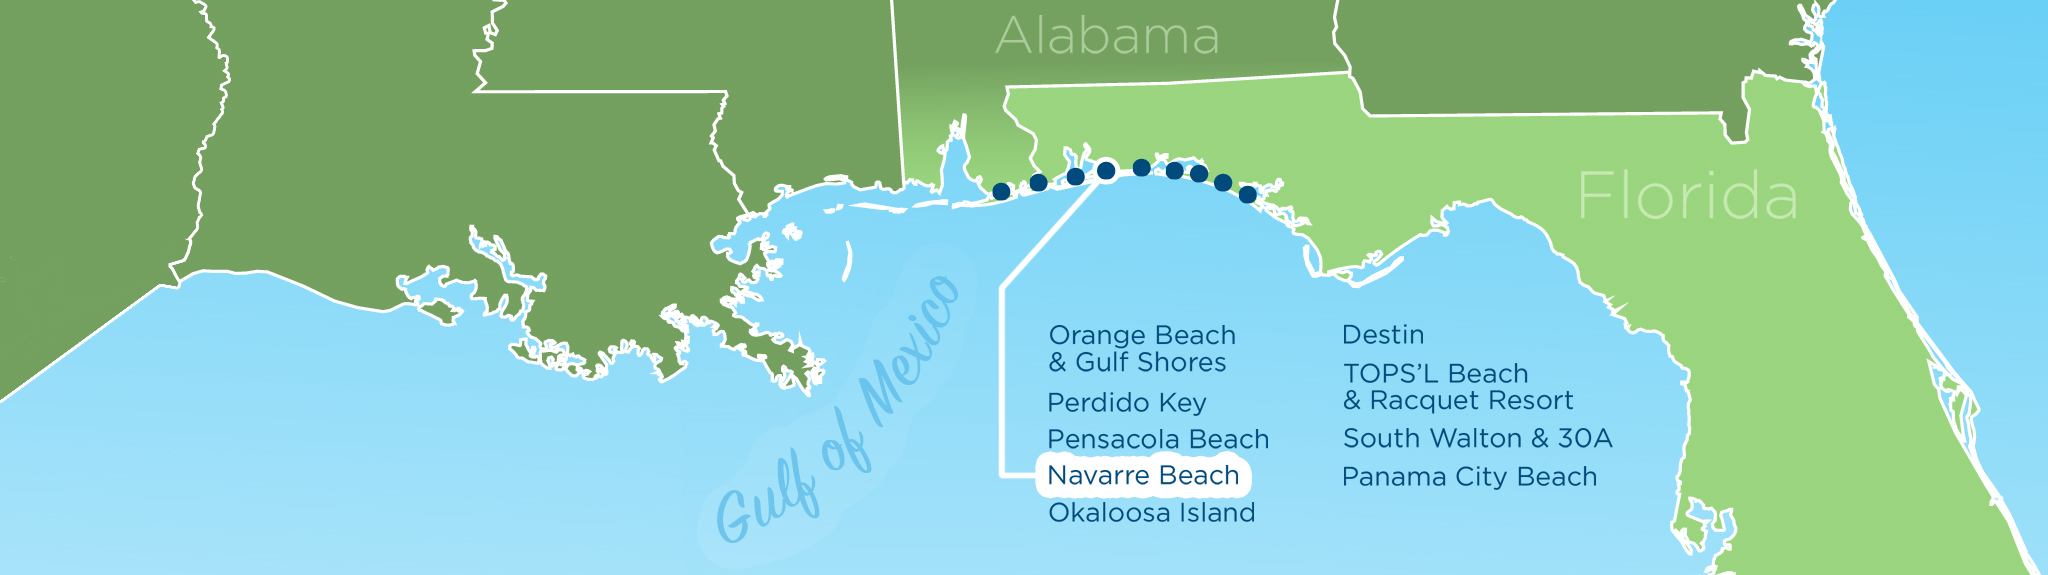 ResortQuest Real Estate NW FL AL Gulf Coast Condos And Homes - Gulf map of panama